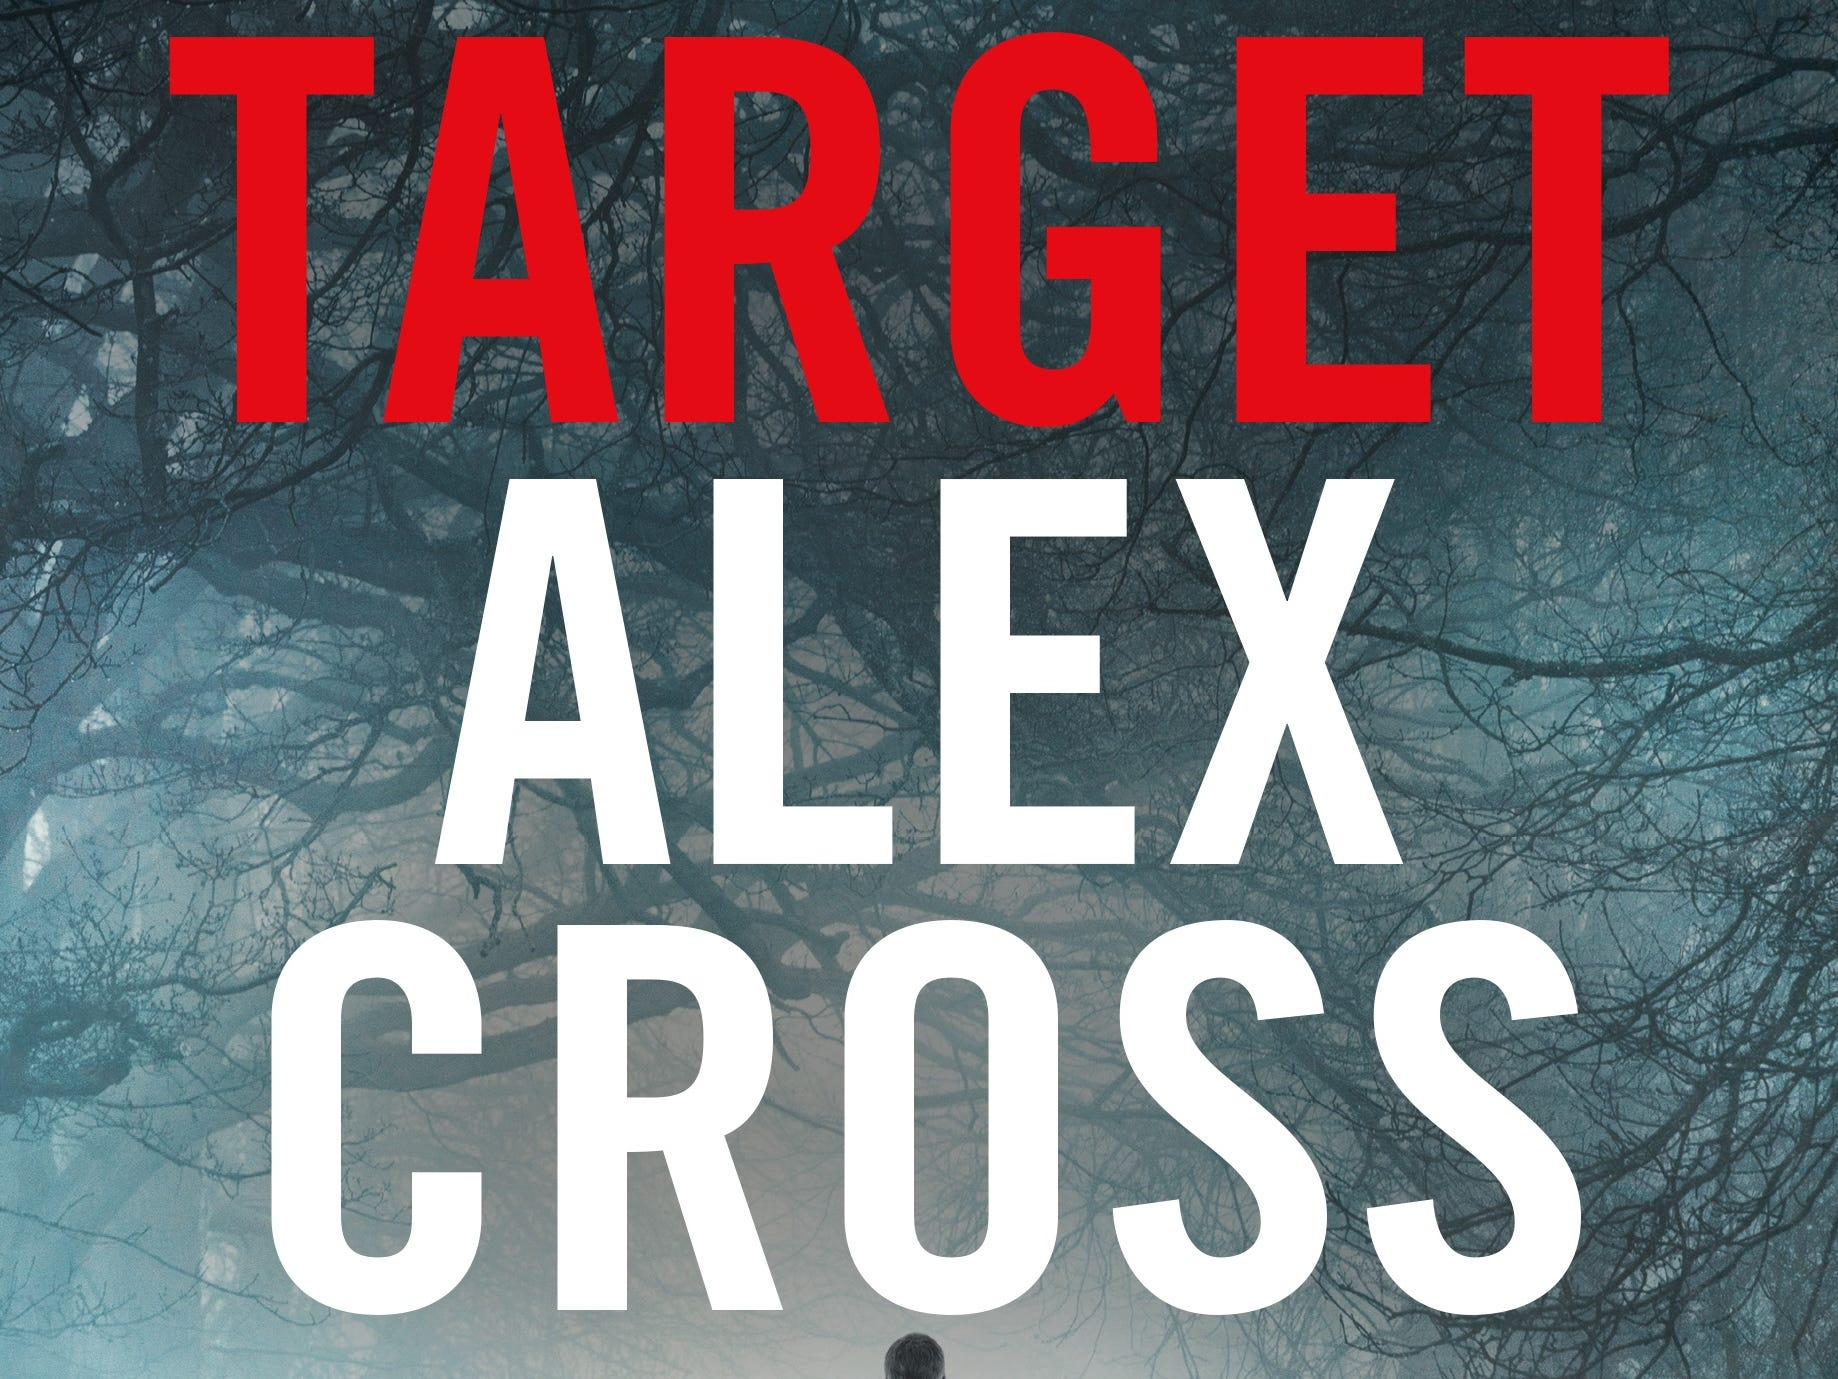 5 new books not to miss this week, including James Patterson's 'Target Alex Cross'